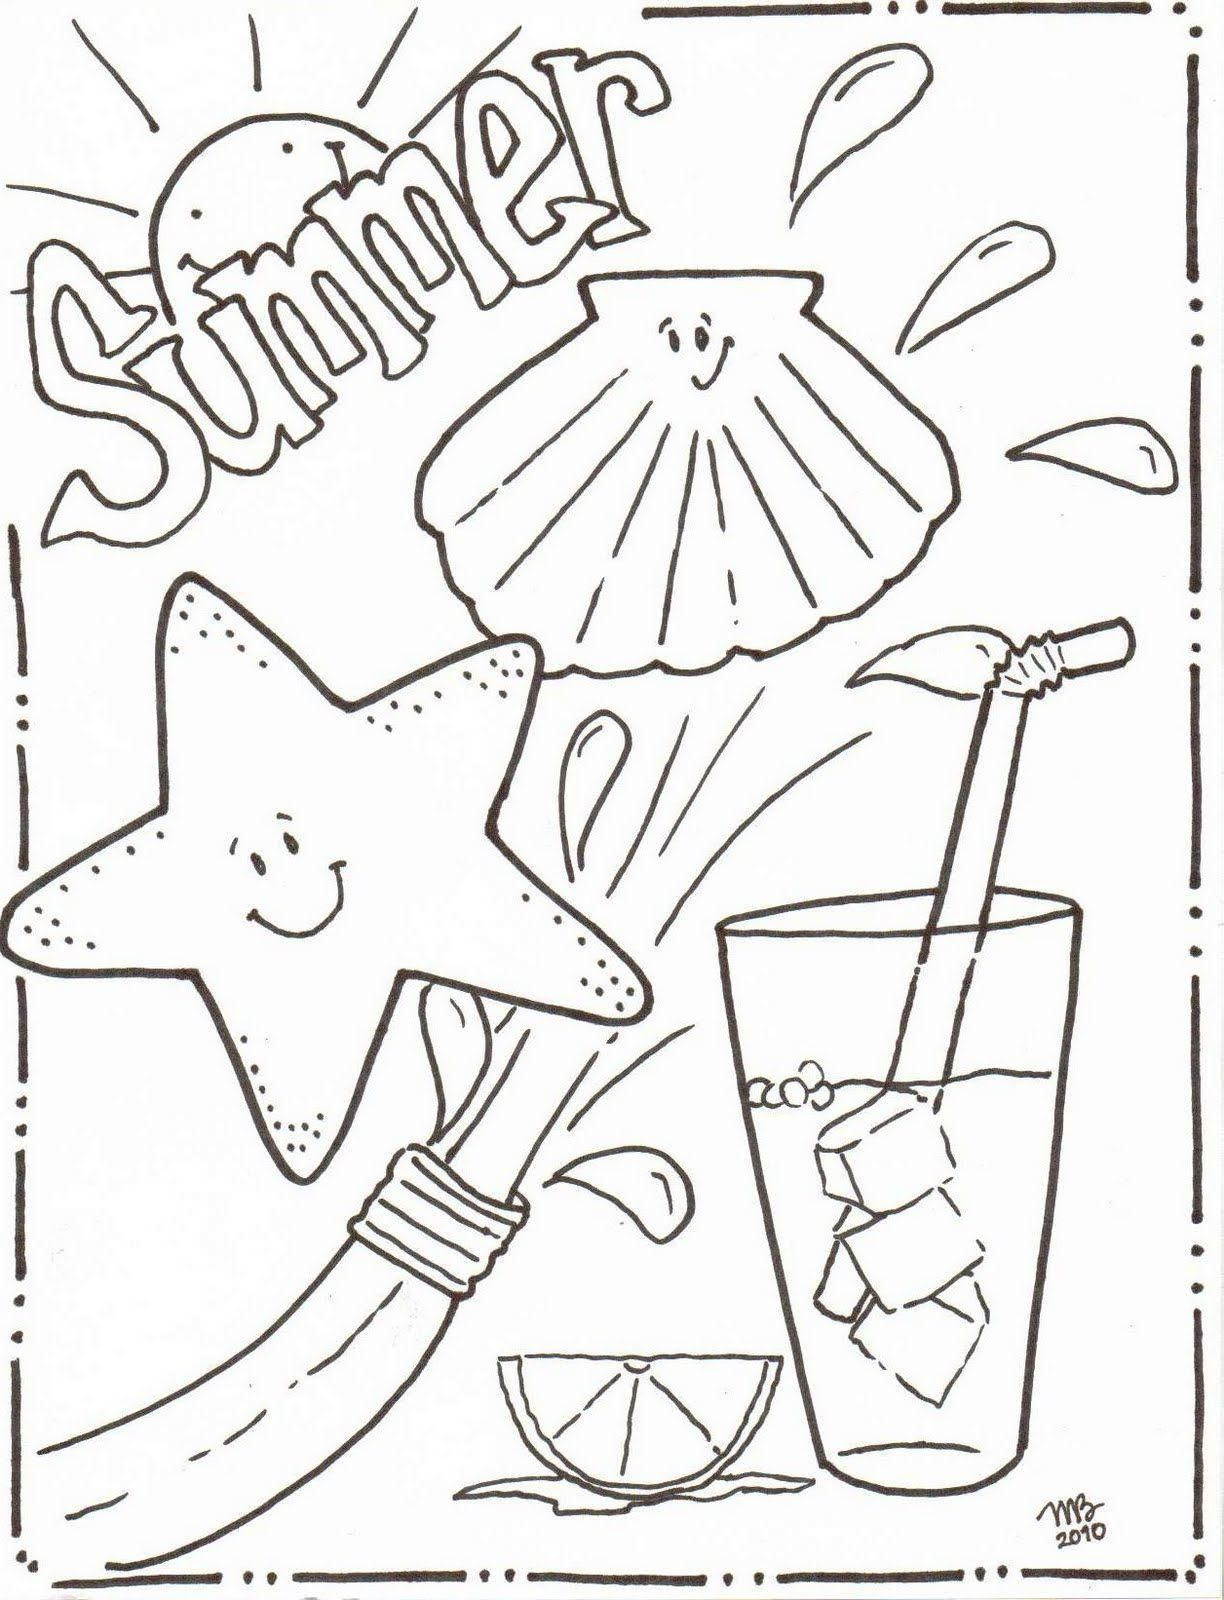 16 Coloring Paper For Kids Cool Coloring Pages Summer Coloring Sheets Summer Coloring Pages